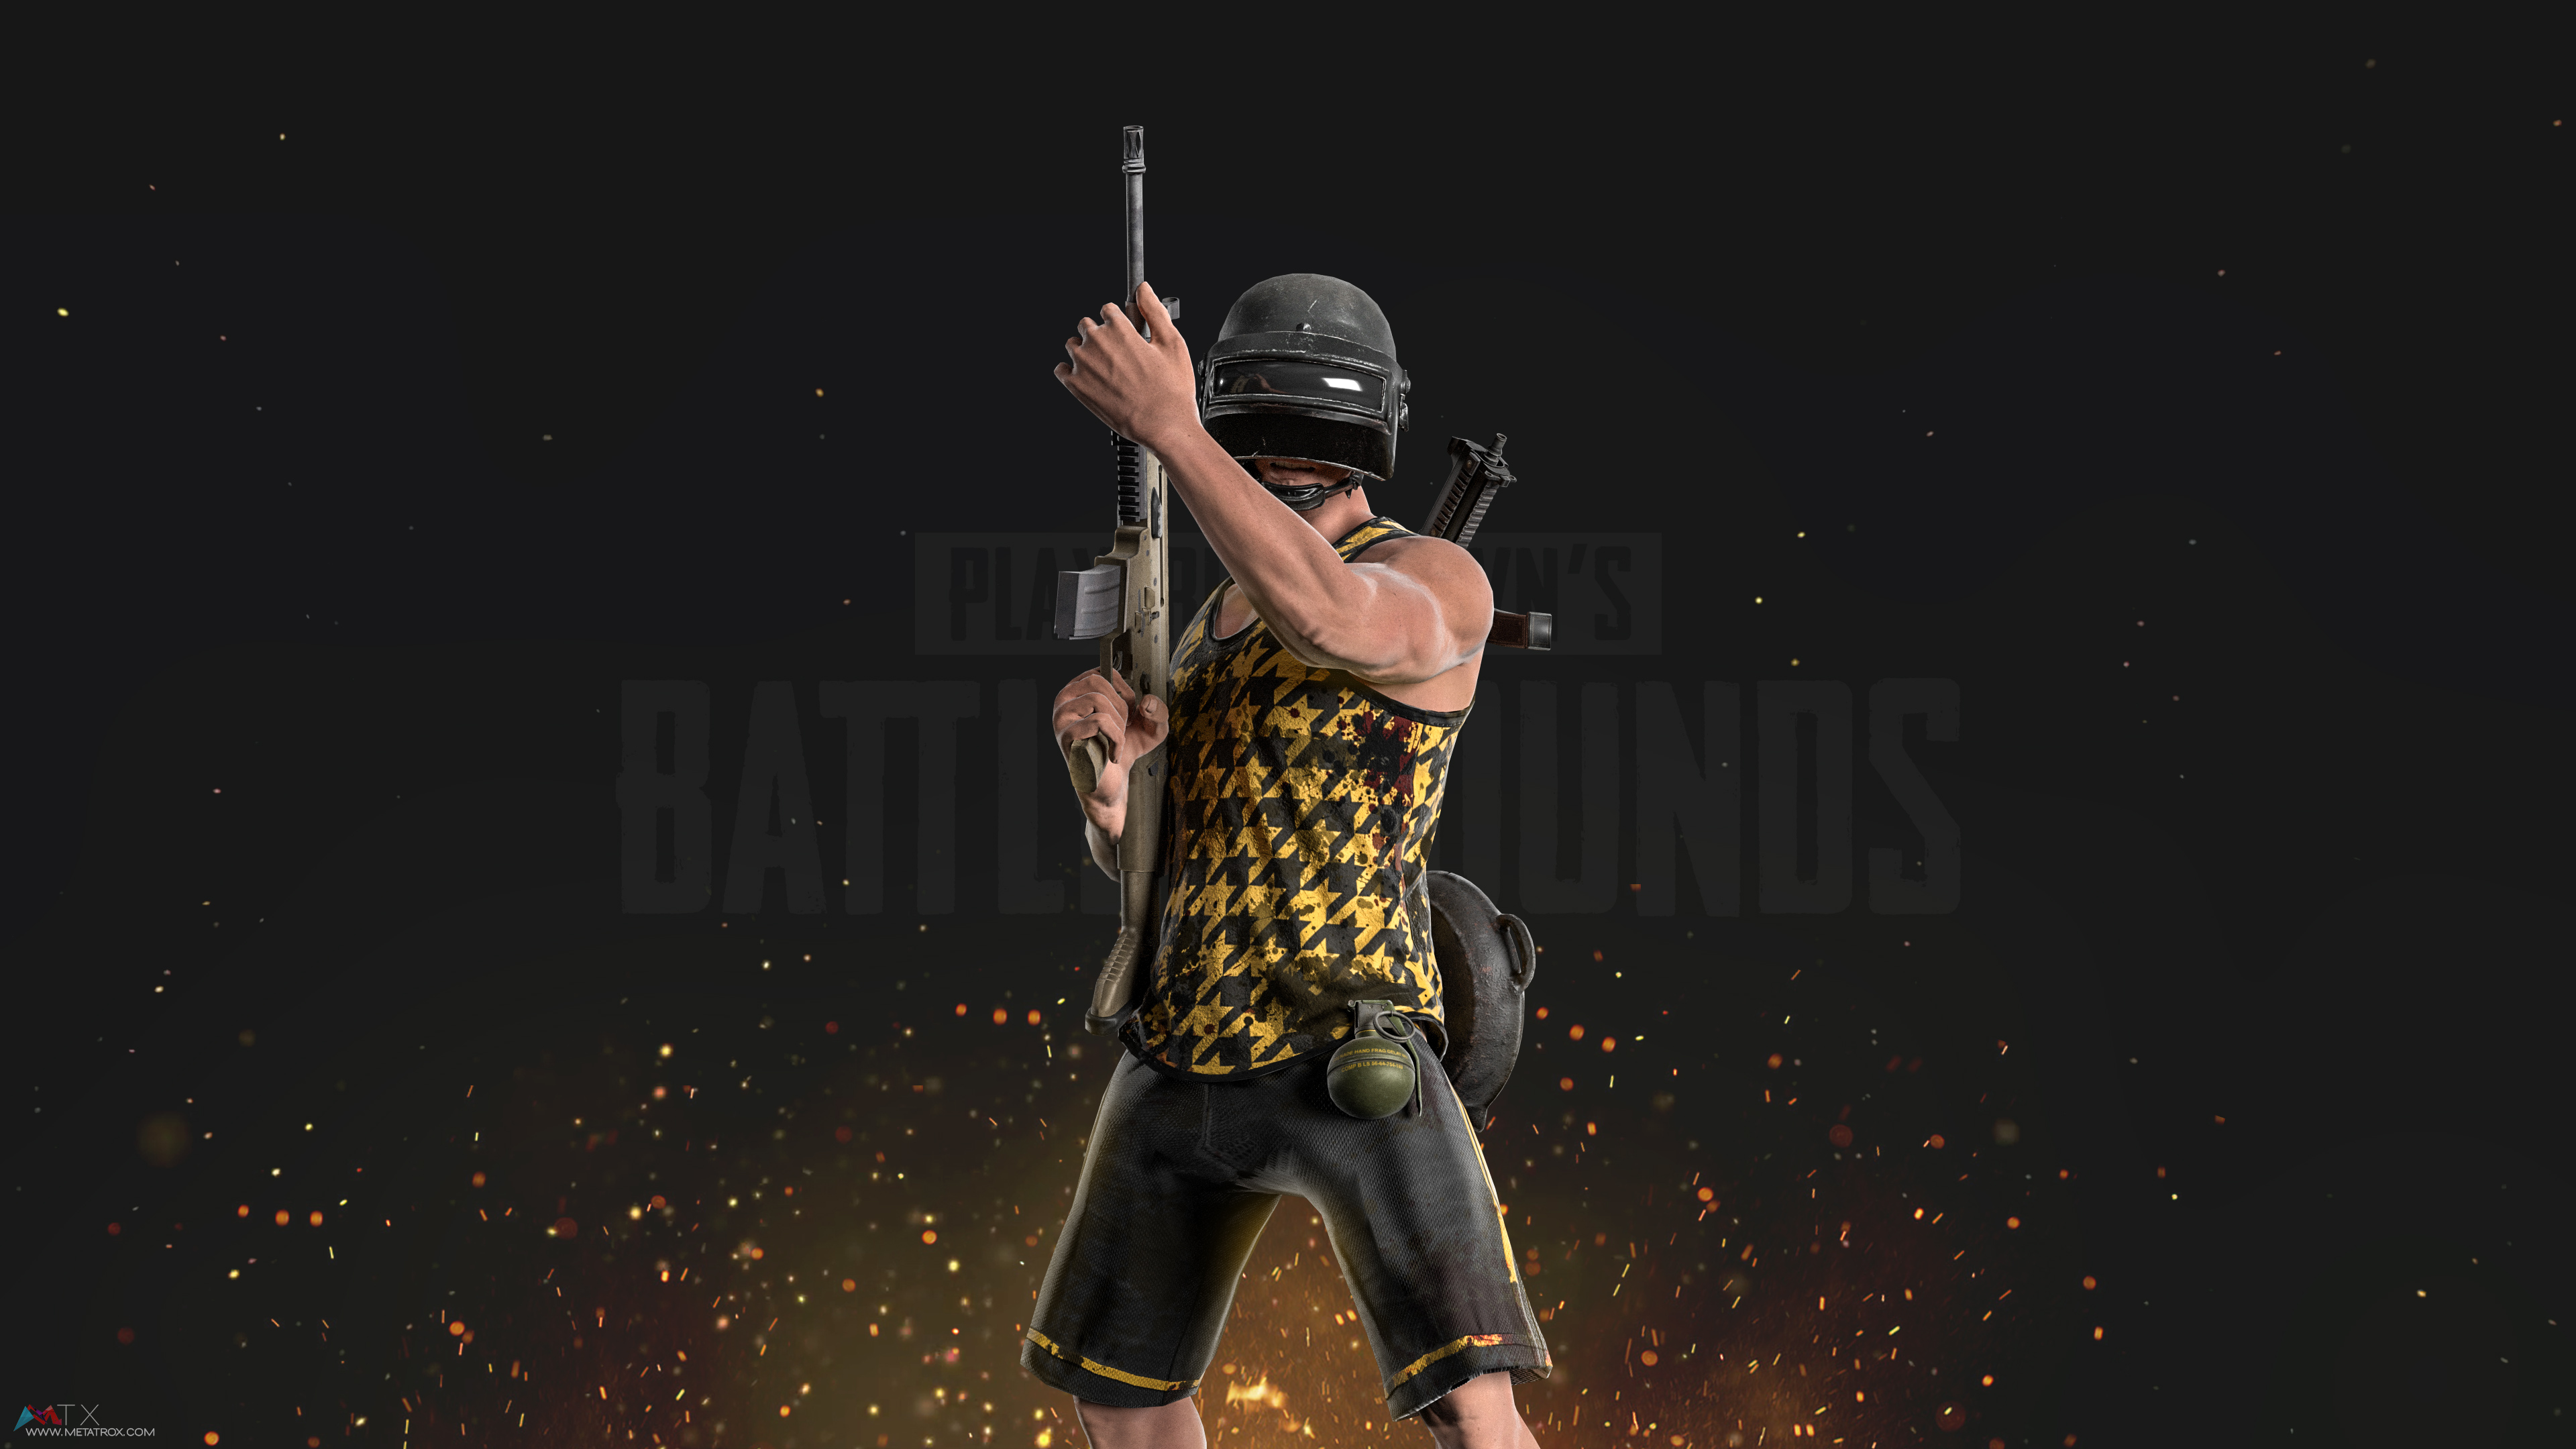 pubg 1537691974 - Pubg - pubg wallpapers, playerunknowns battlegrounds wallpapers, hd-wallpapers, gun wallpapers, games wallpapers, dark wallpapers, black wallpapers, 4k-wallpapers, 2018 games wallpapers